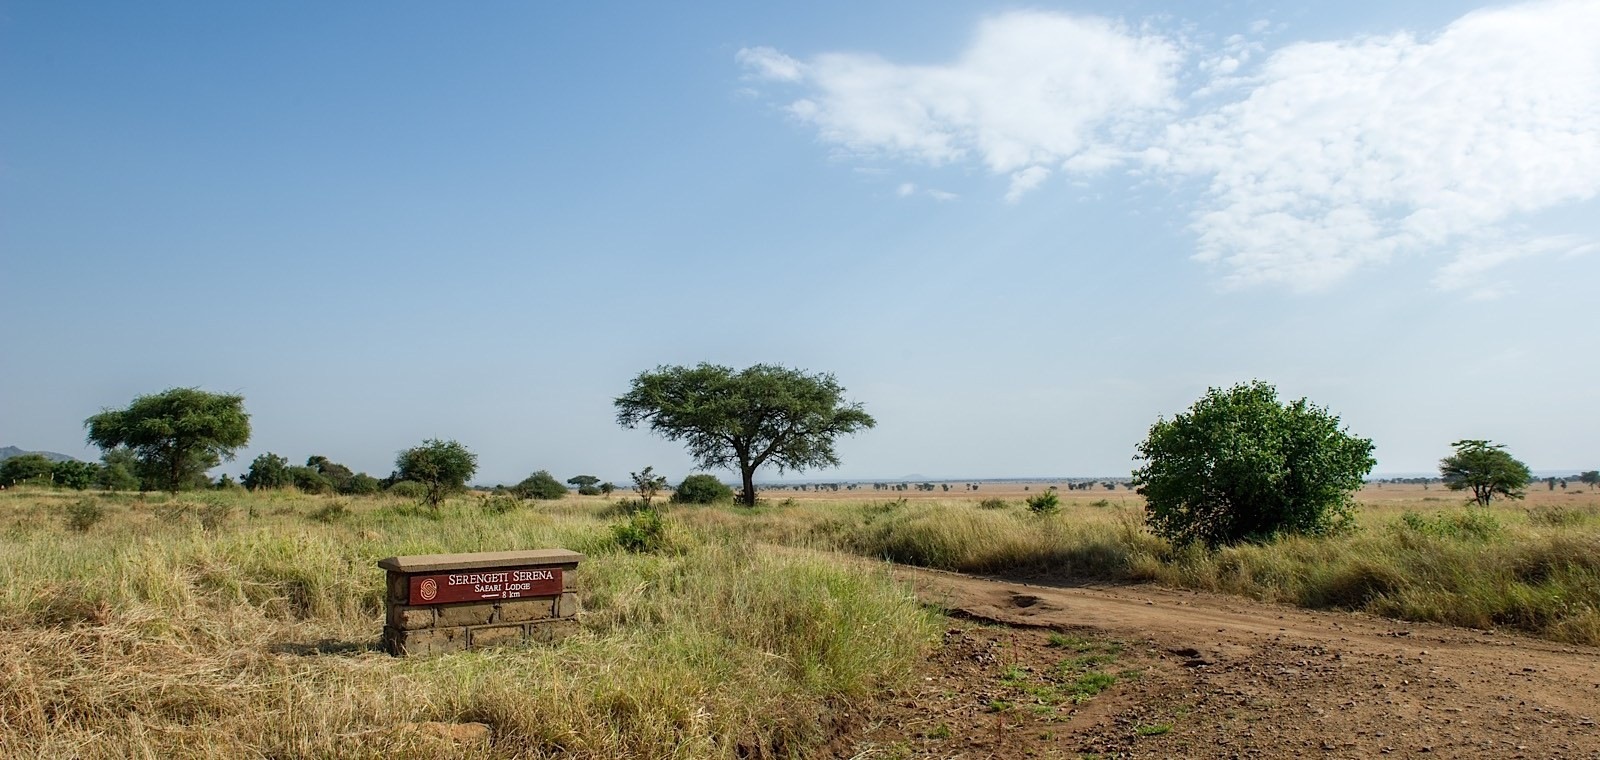 Best Lodges in the Serengeti